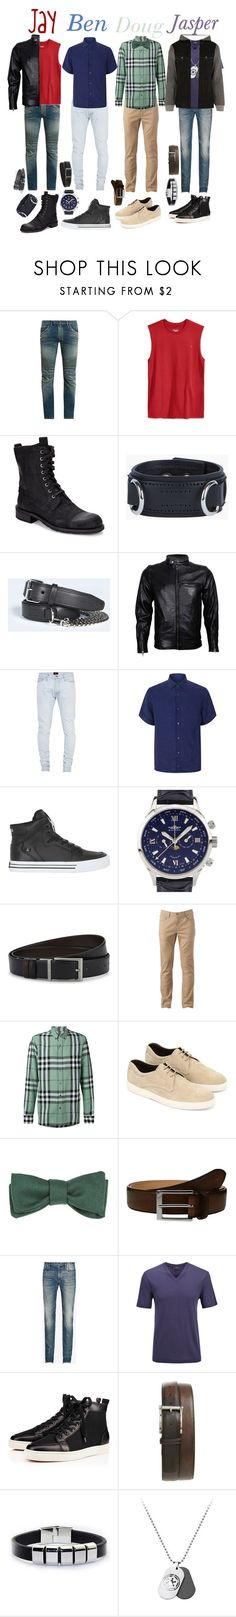 """Chilling with the Guys 2"" by keih95 ❤ liked on Polyvore featuring Balmain, Champion, John Varvatos, Dsquared2, VIPARO, Fear of God, Z Zegna, Supra, Balmer and HUGO"